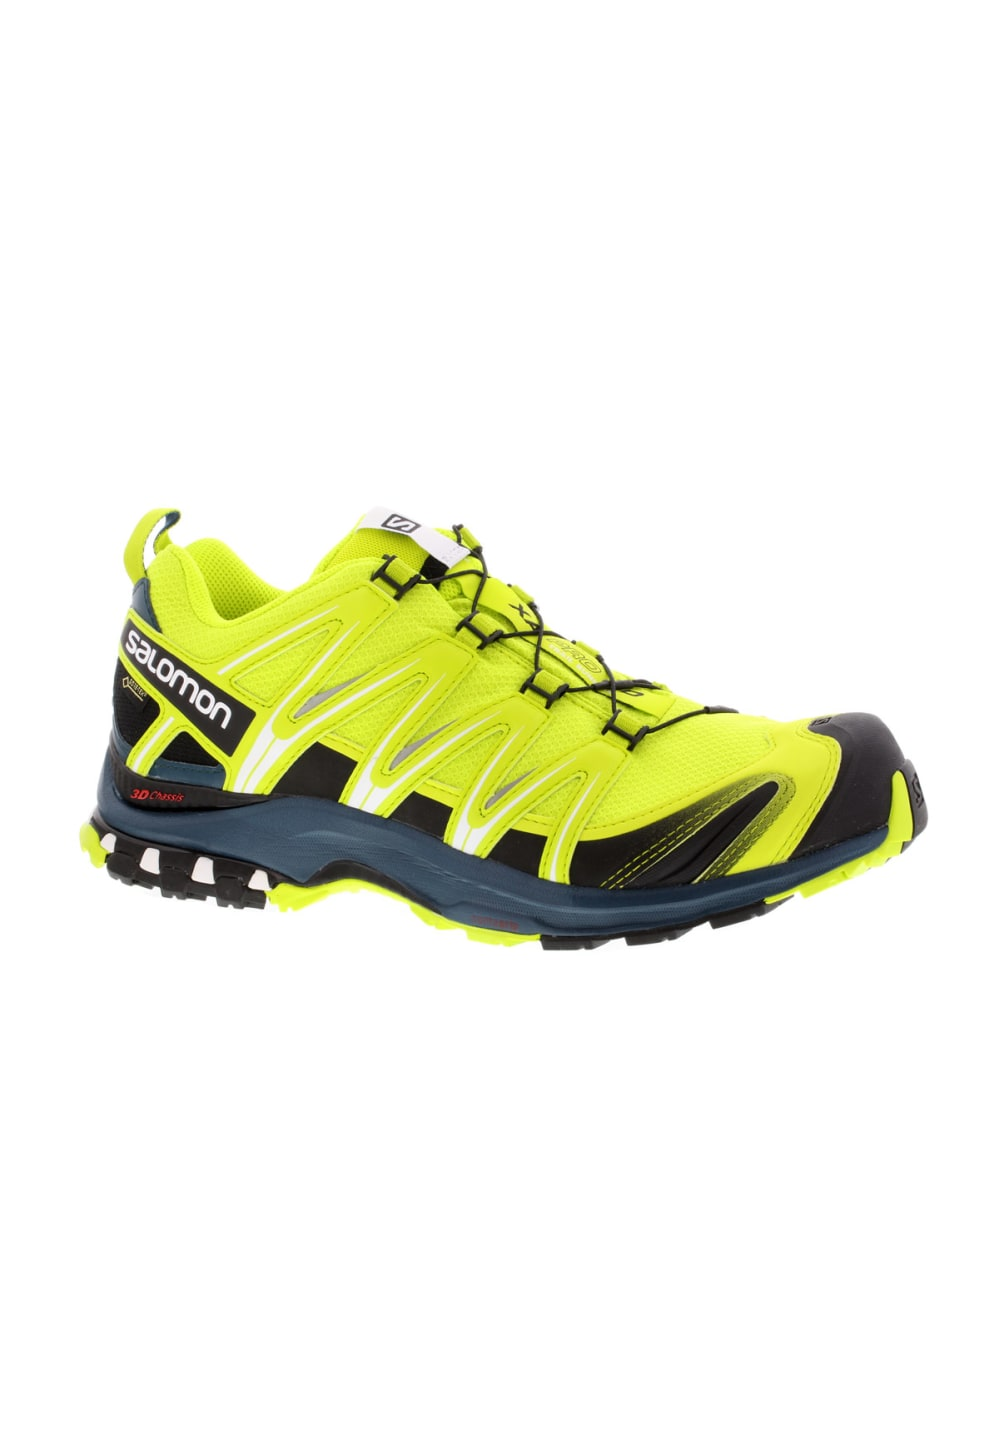 bas prix 4136d 9a7e8 Salomon XA Pro 3D GTX - Running shoes for Men - Yellow